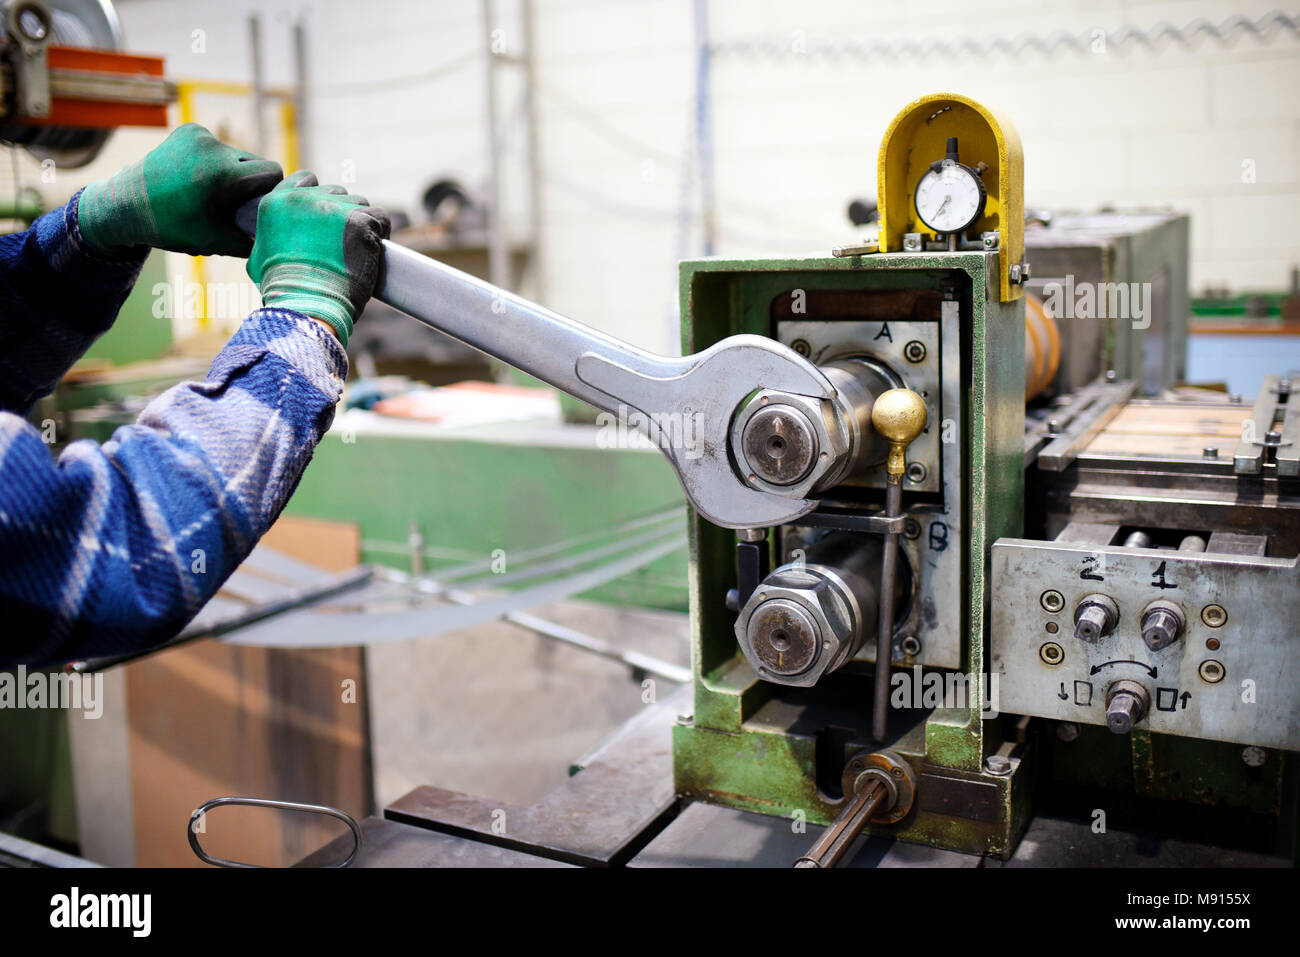 Worker adjusting machinery with large metal wrench - Stock Image